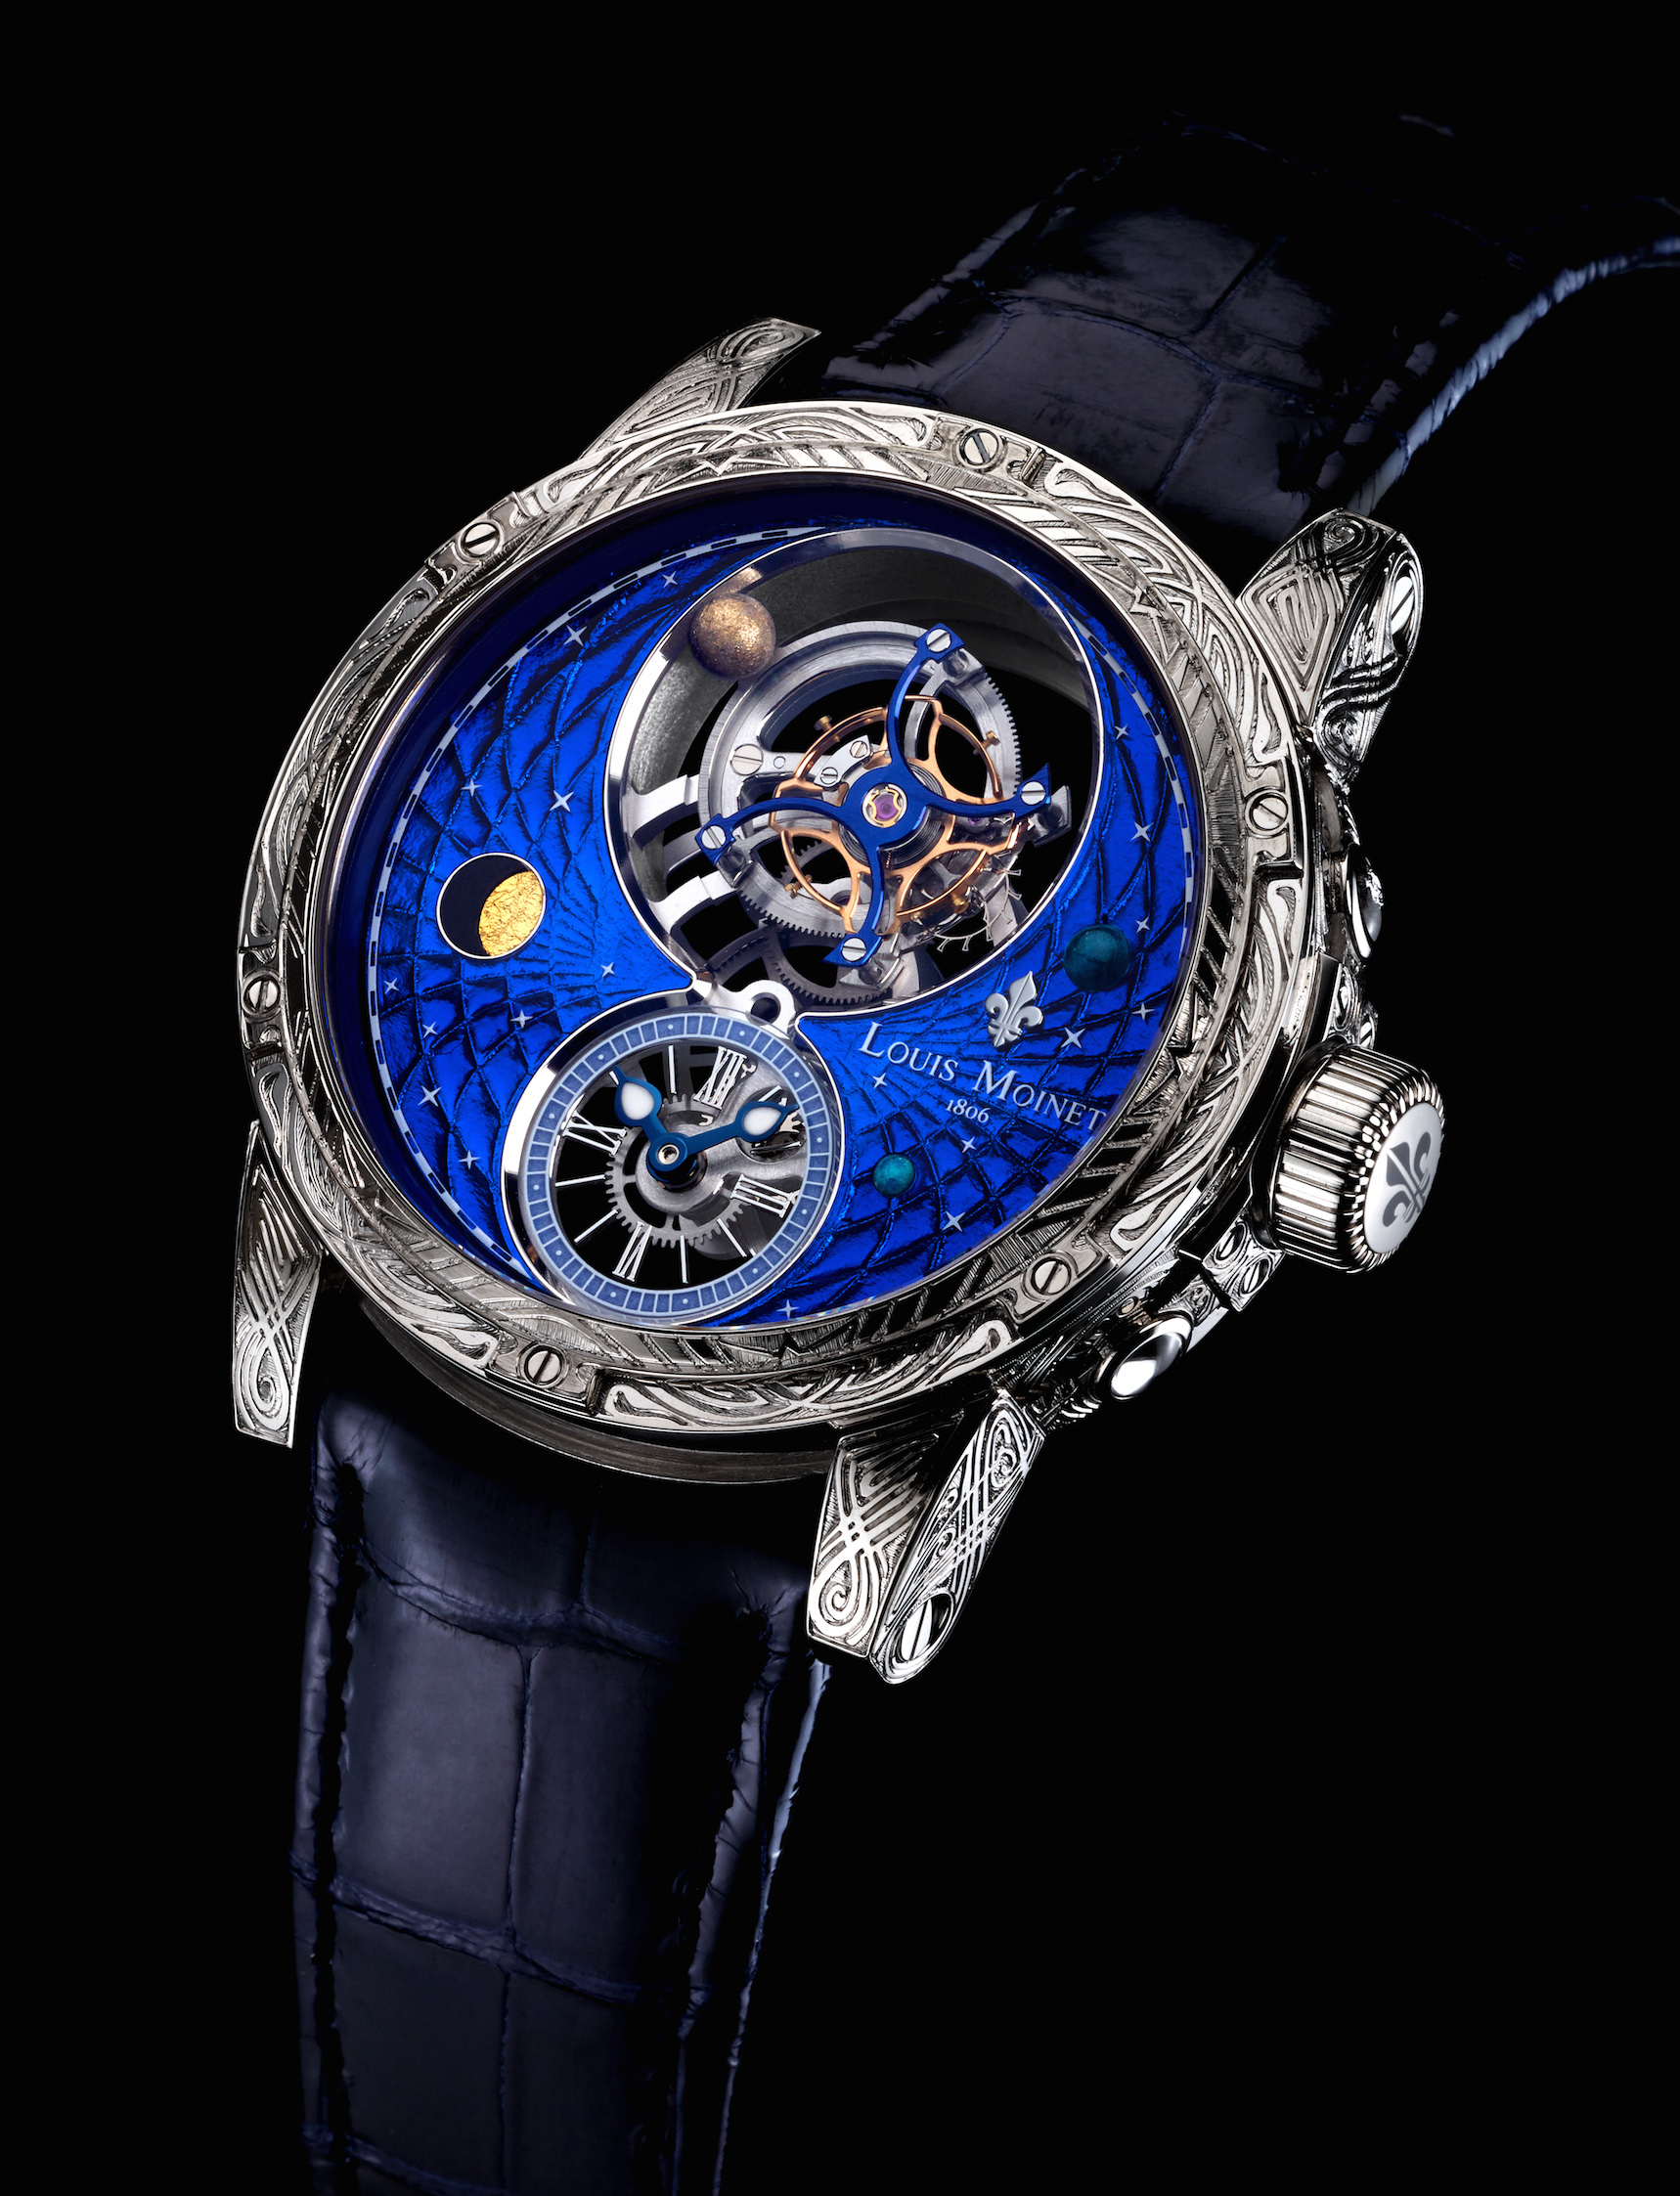 Louis Moinet Space Mystery Watch is a world first